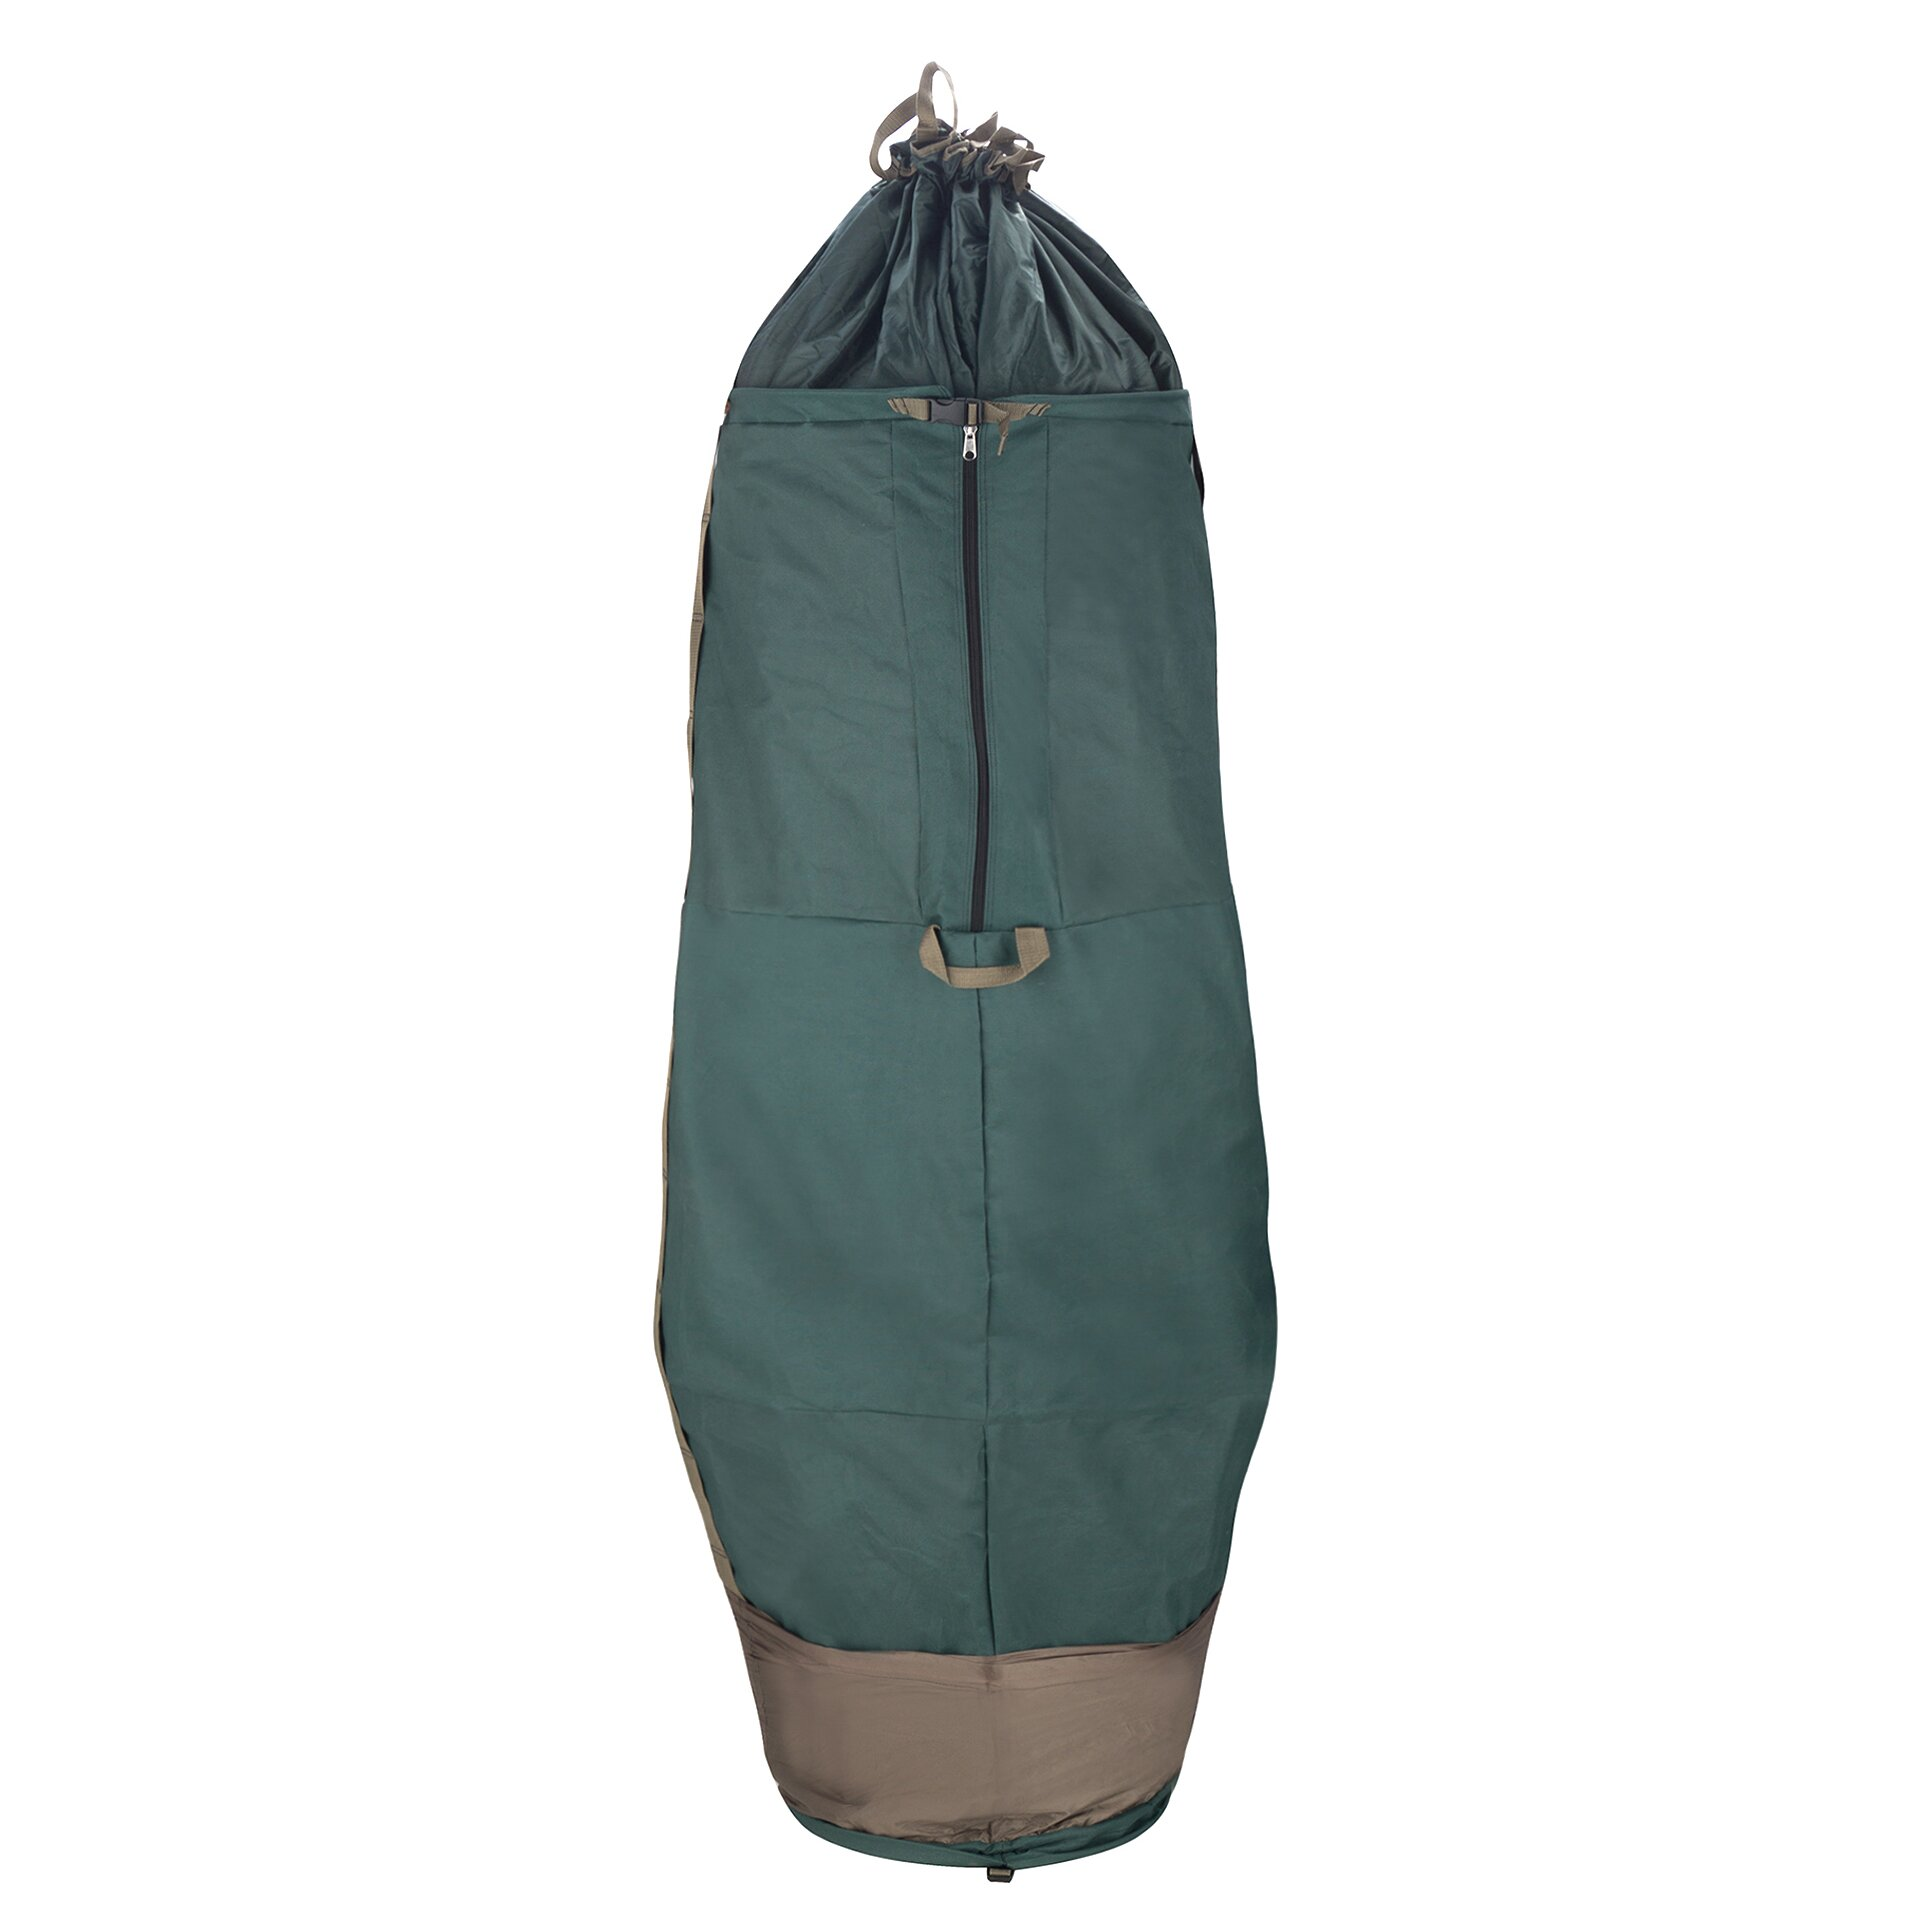 Storage bags for christmas trees - Elf Stor Carmen Christmas Tree Storage Bag